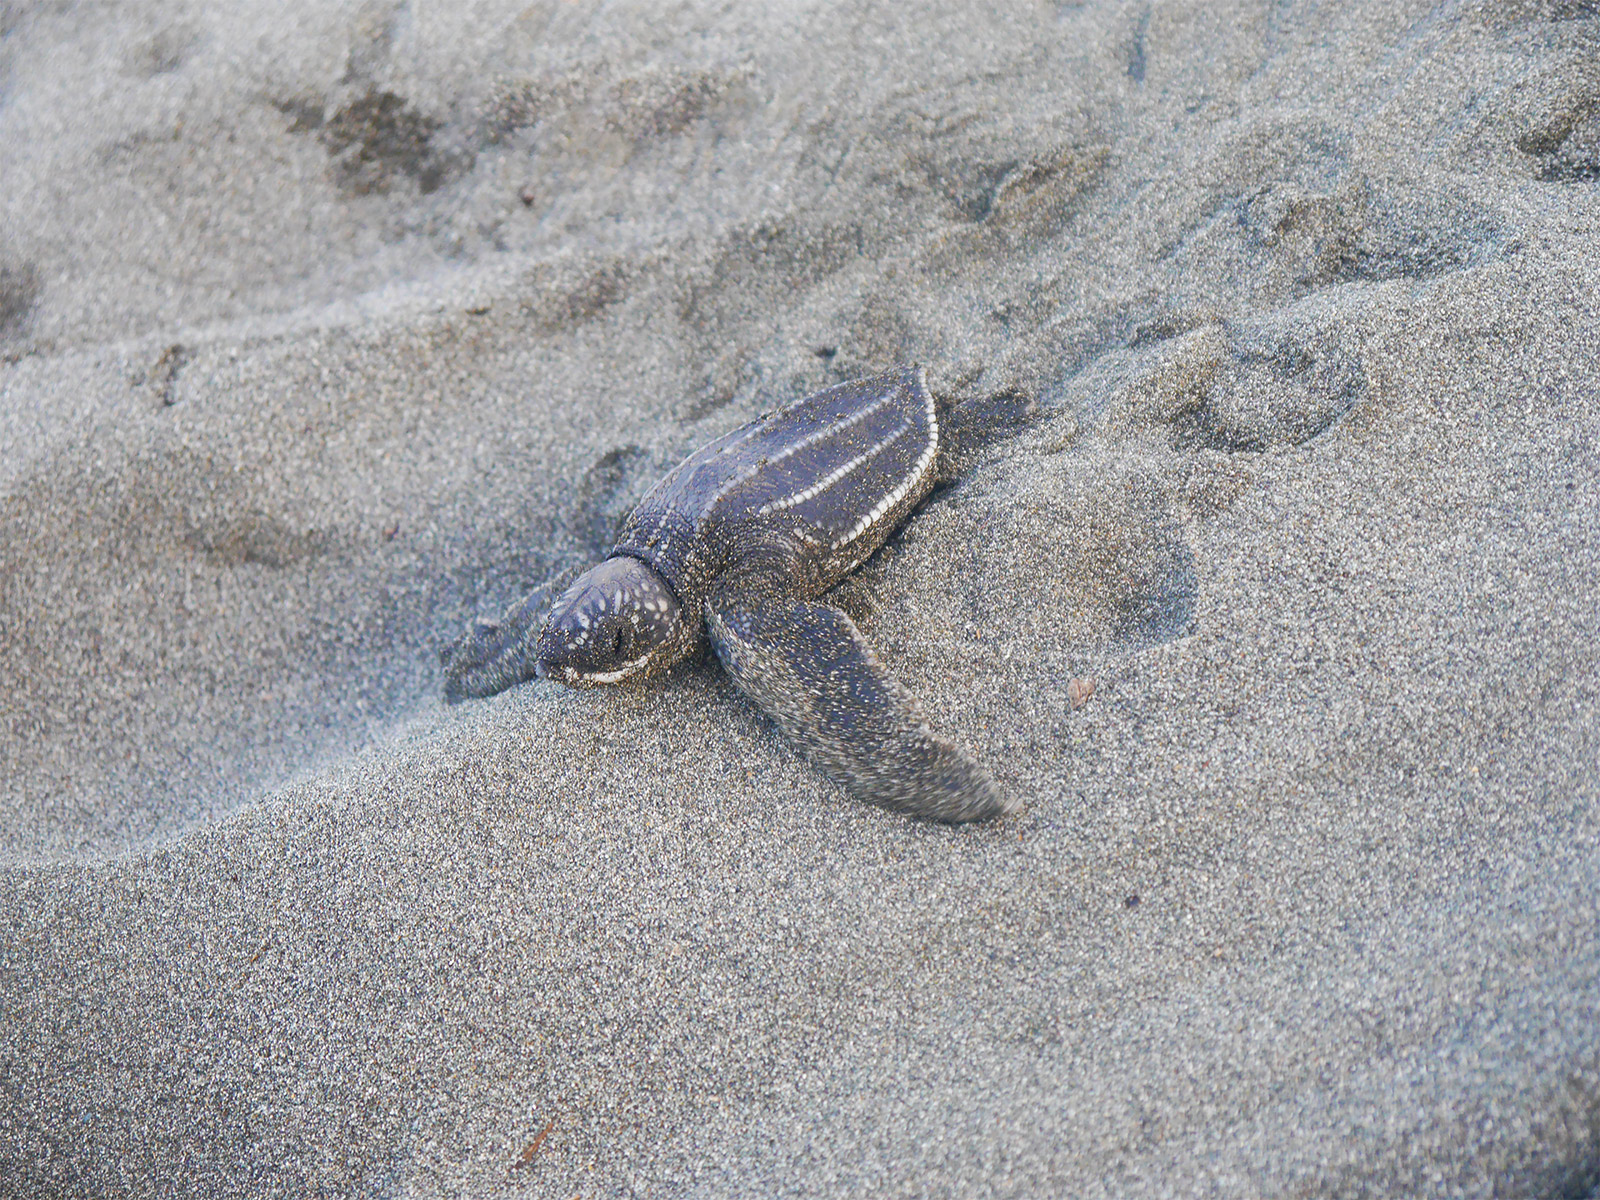 school_expedition_costa_rica_impact_baby_turtle